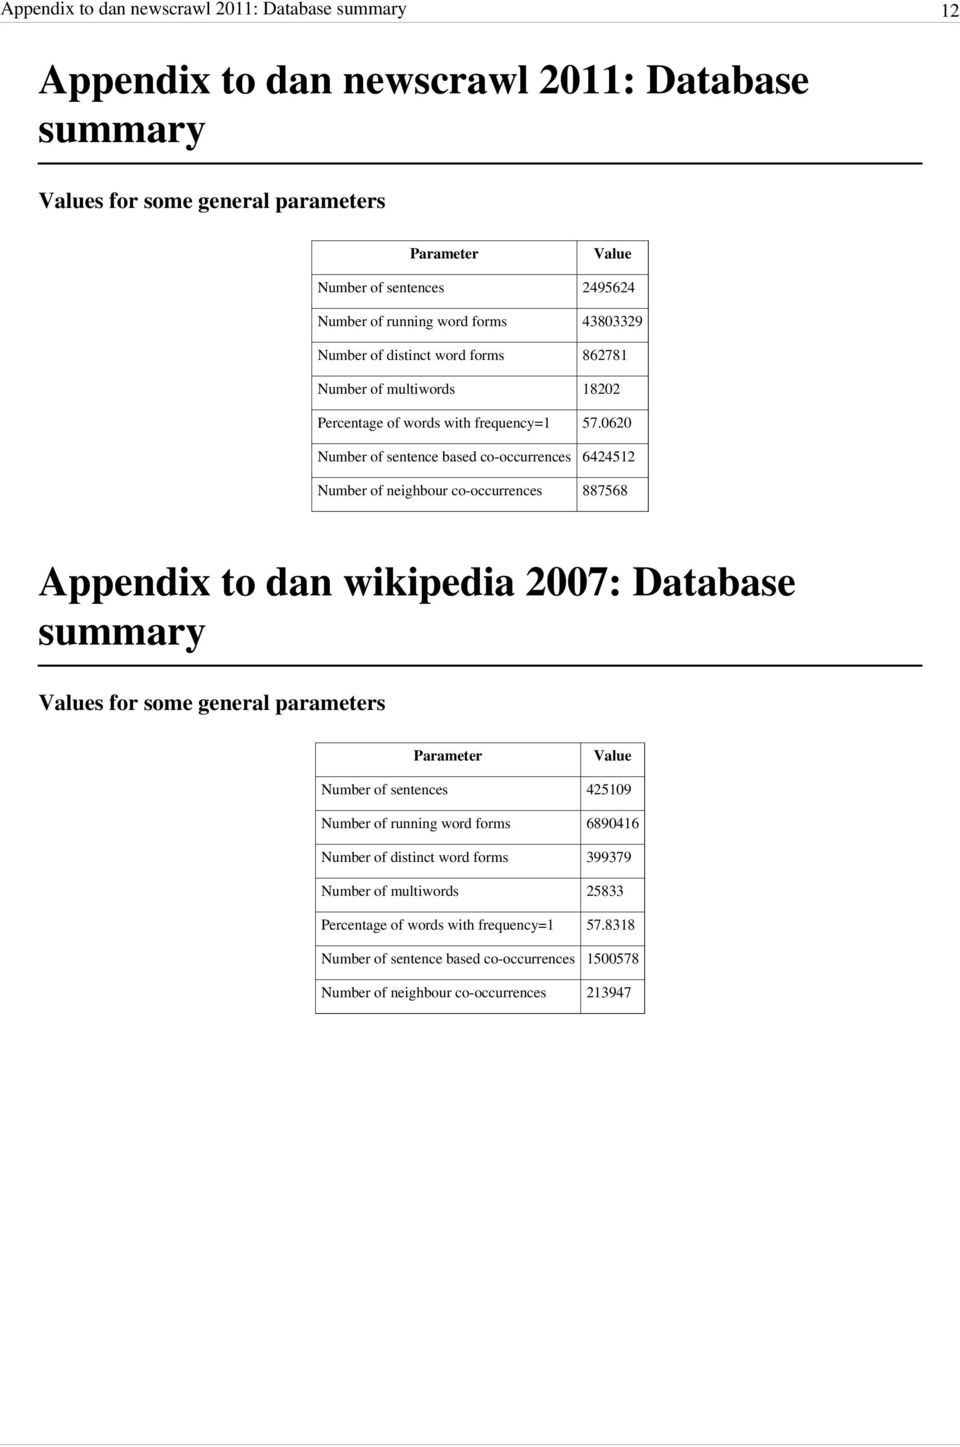 0620 Number of sentence based co-occurrences 6424512 Number of neighbour co-occurrences 887568 Appendix to dan wikipedia 2007: Database summary Values for some general parameters Parameter Value